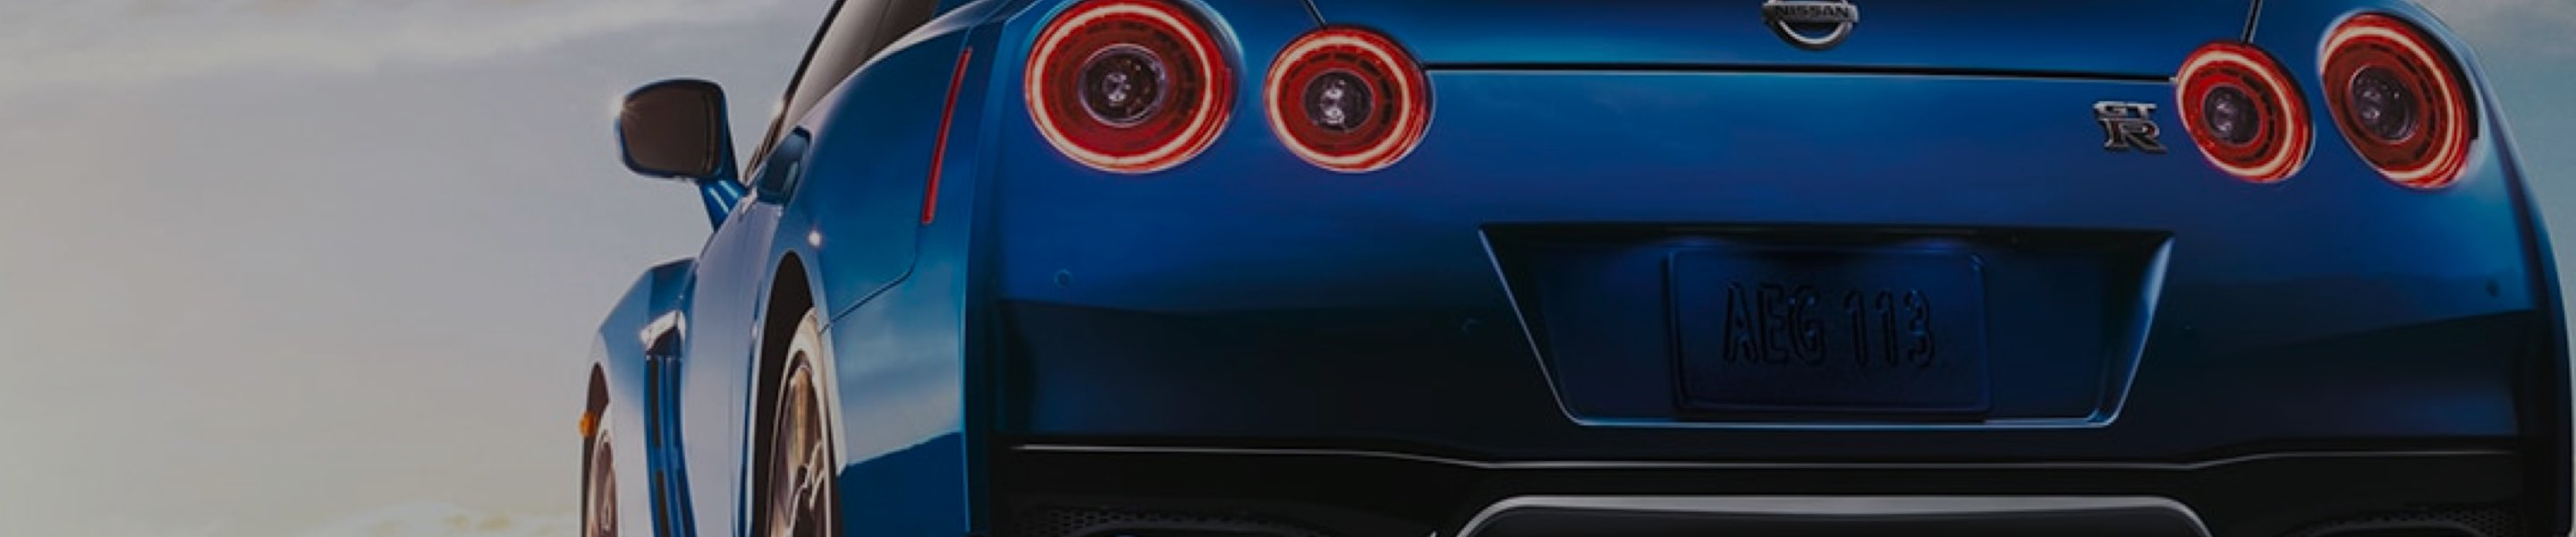 2021 Nissan GT-R rear view